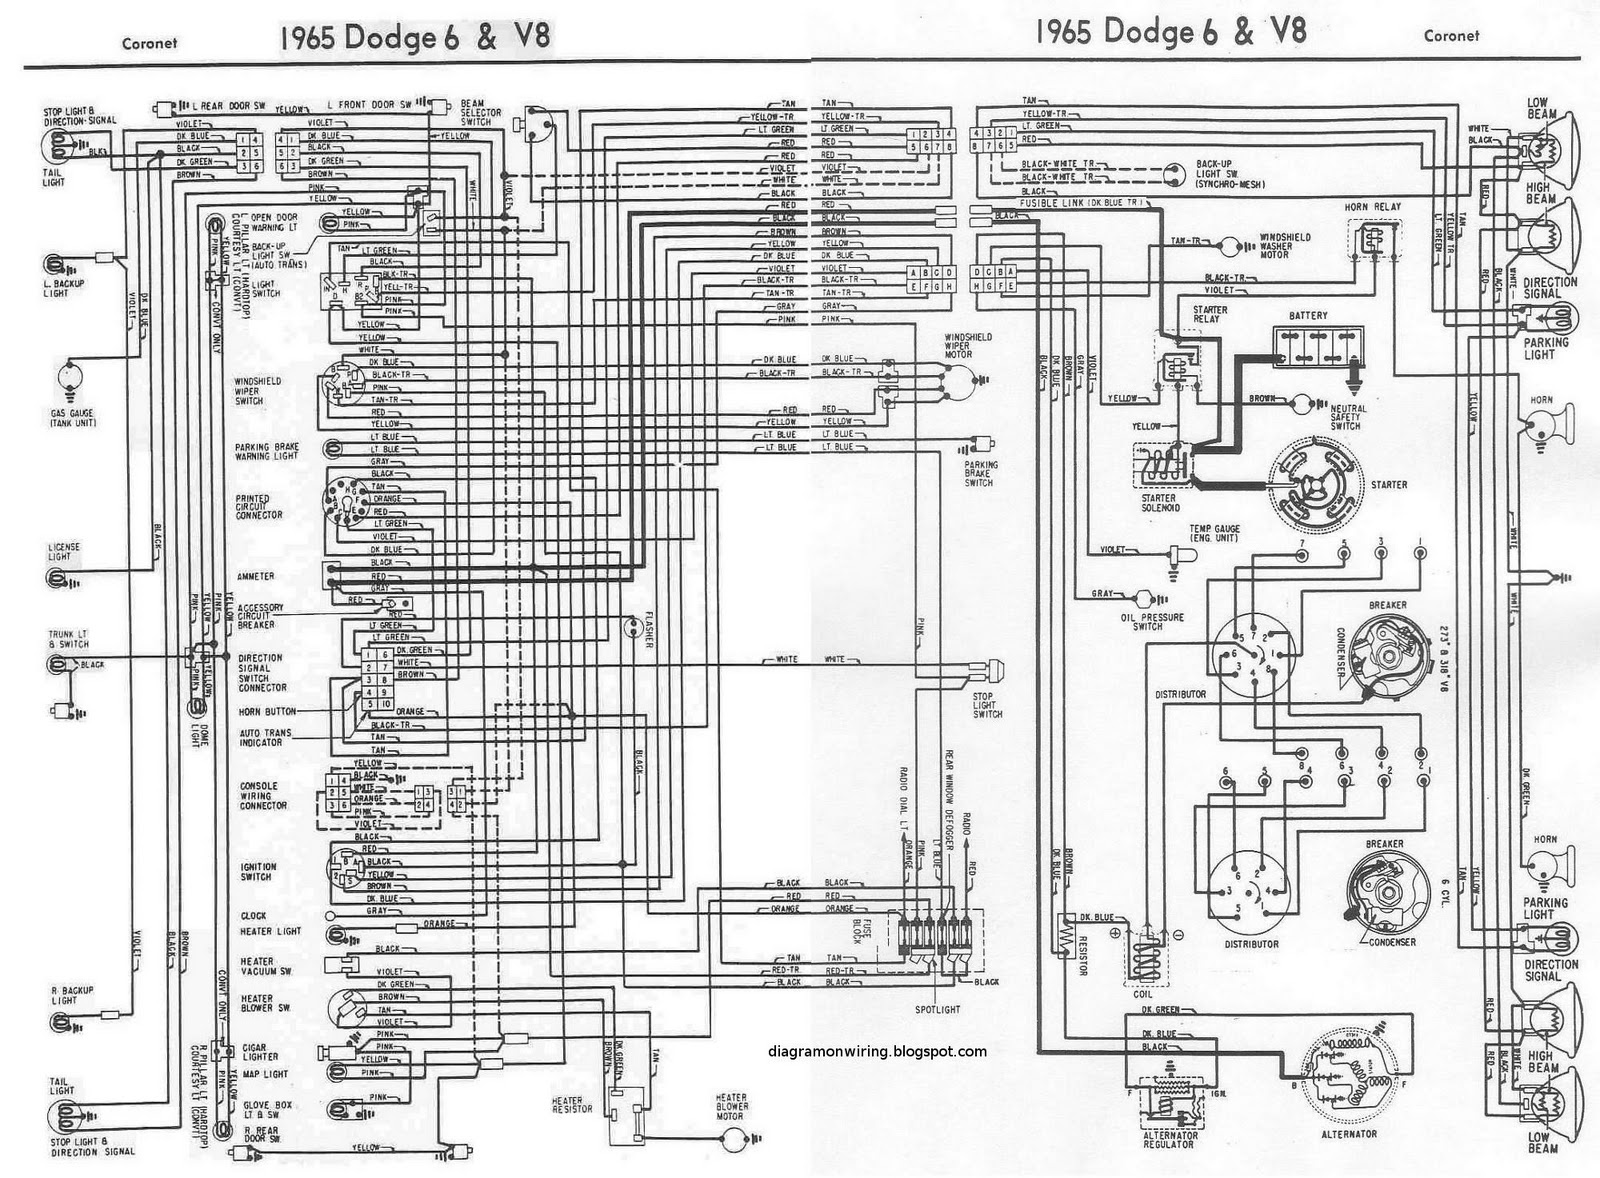 small resolution of dodge demon wiring diagrams library of wiring diagrams u ti com jpg 1600x1178 plymouth duster headlight